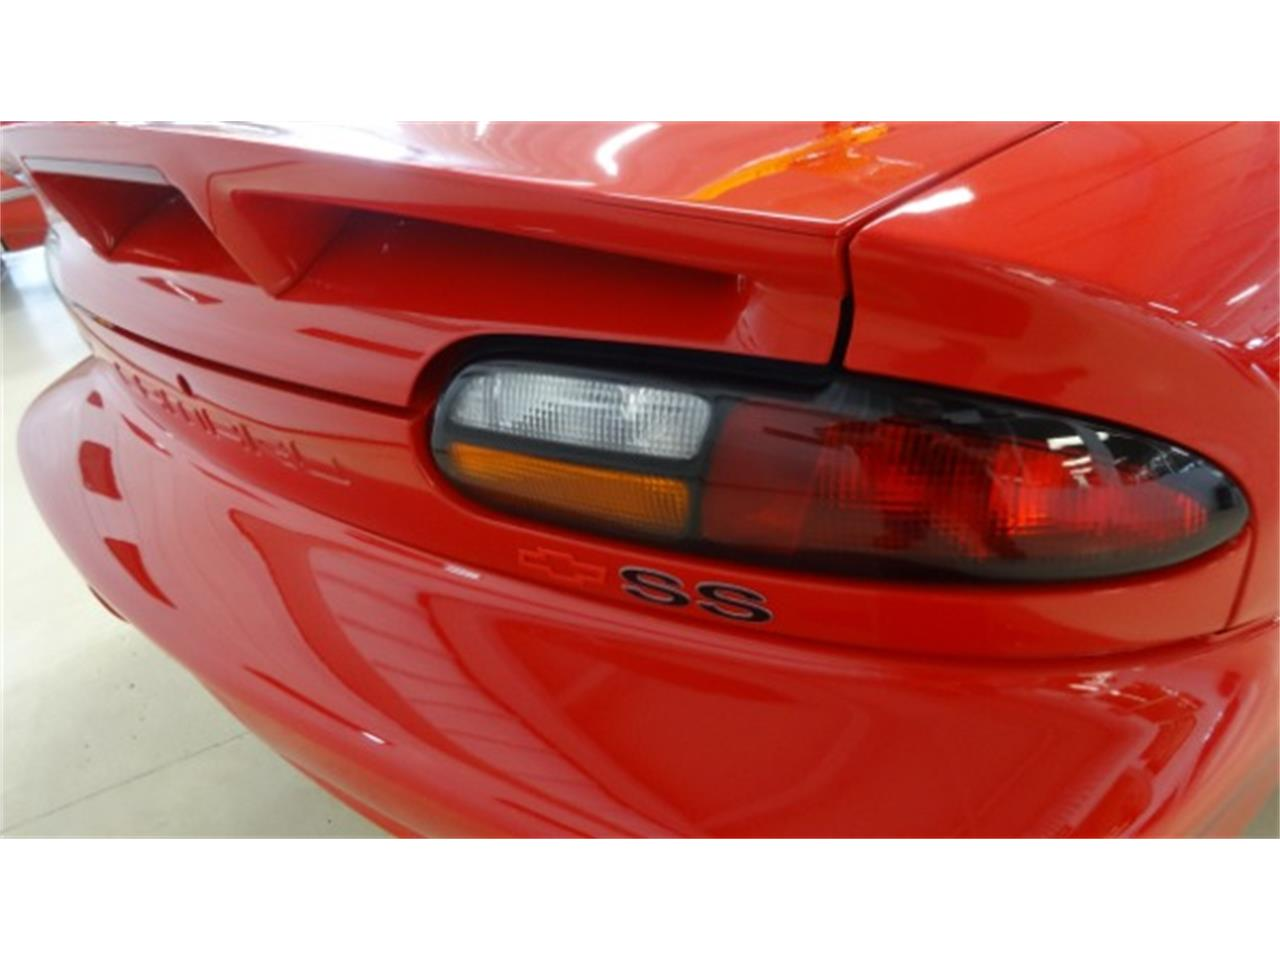 Large Picture of 1999 Chevrolet Camaro located in Ohio Offered by Cruisin Classics - IHTC